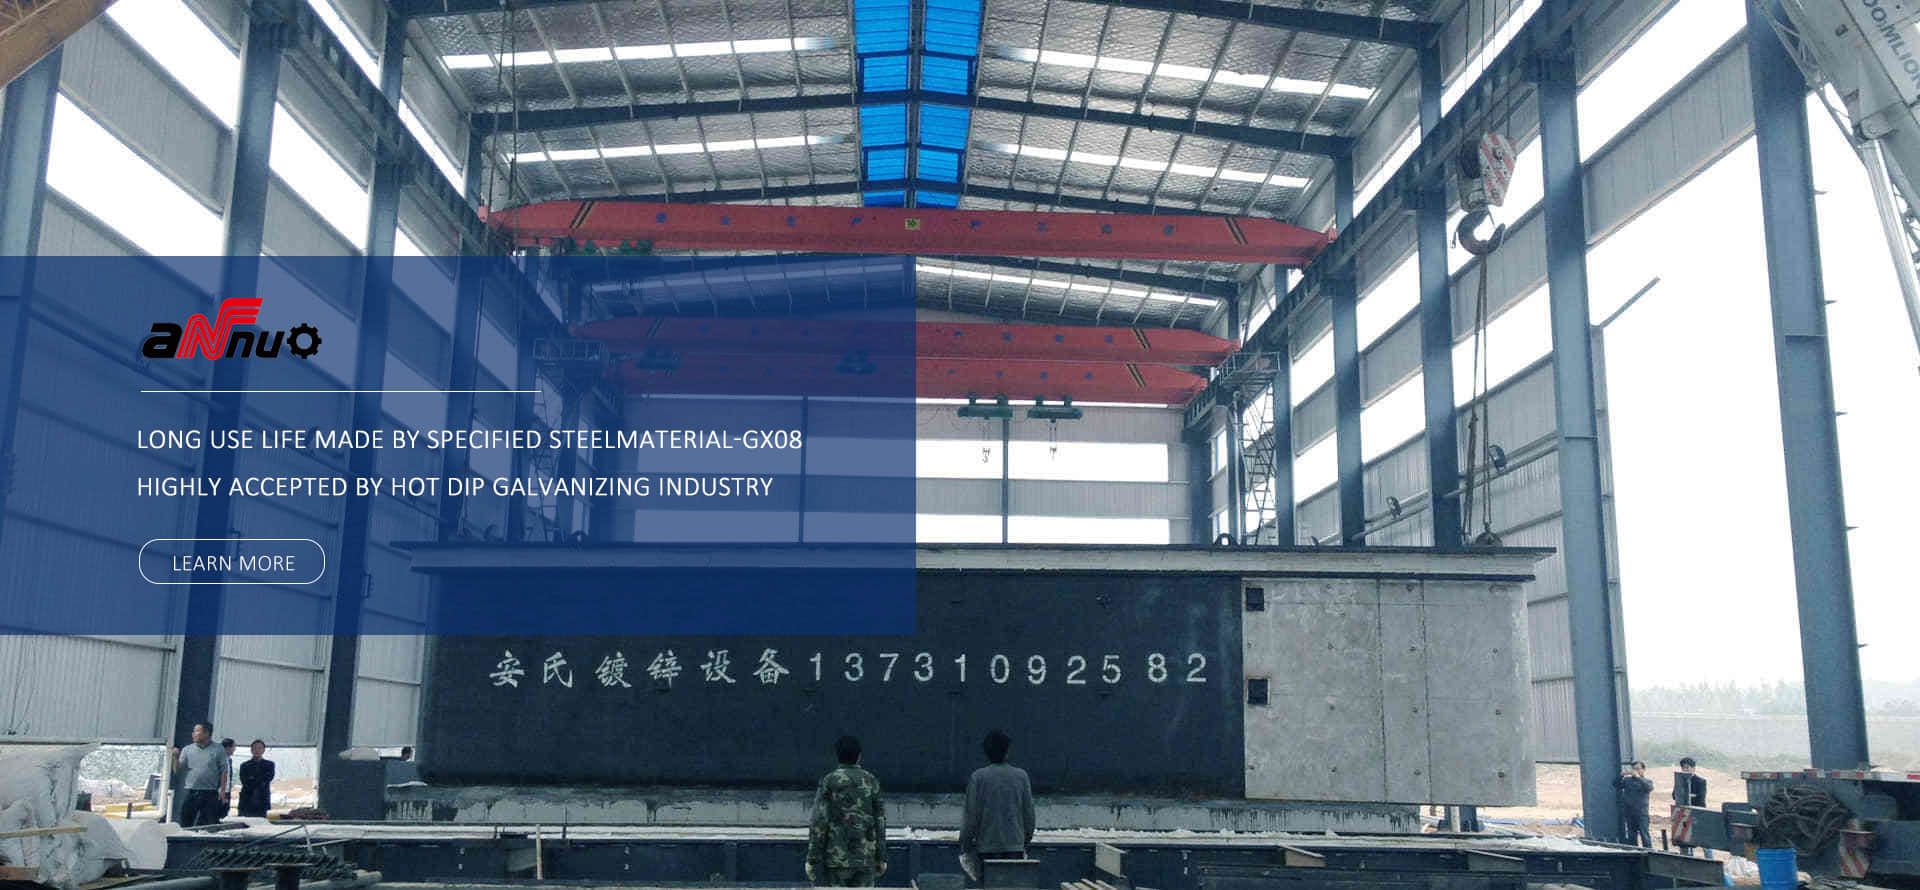 Long use life made by Specified Steel material-GX08 highly accepted by hot dip Galvanizing Industry